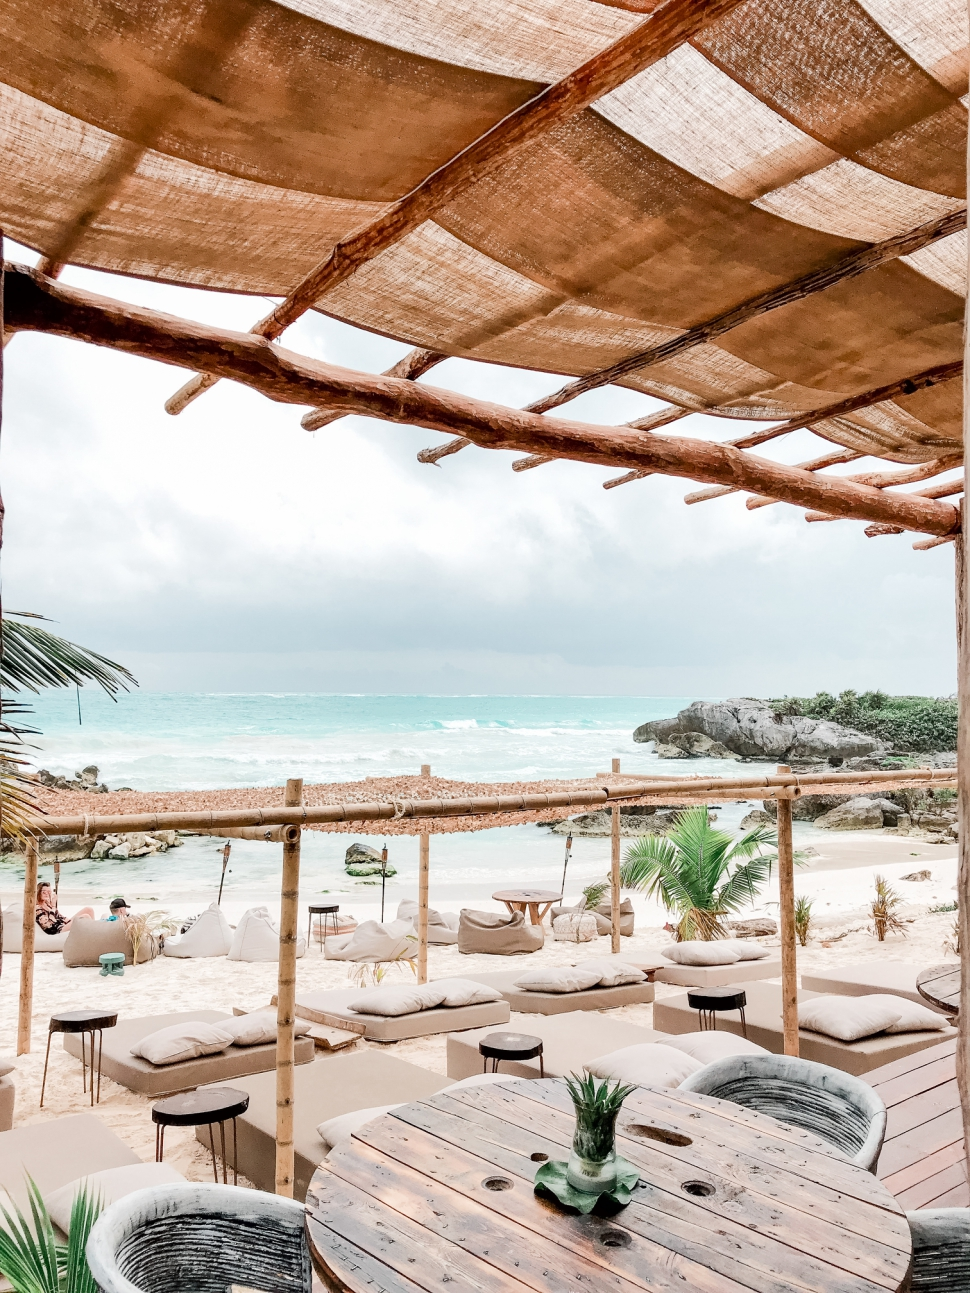 Where-to-Stay-in-Tulum-Mexico_02.jpg